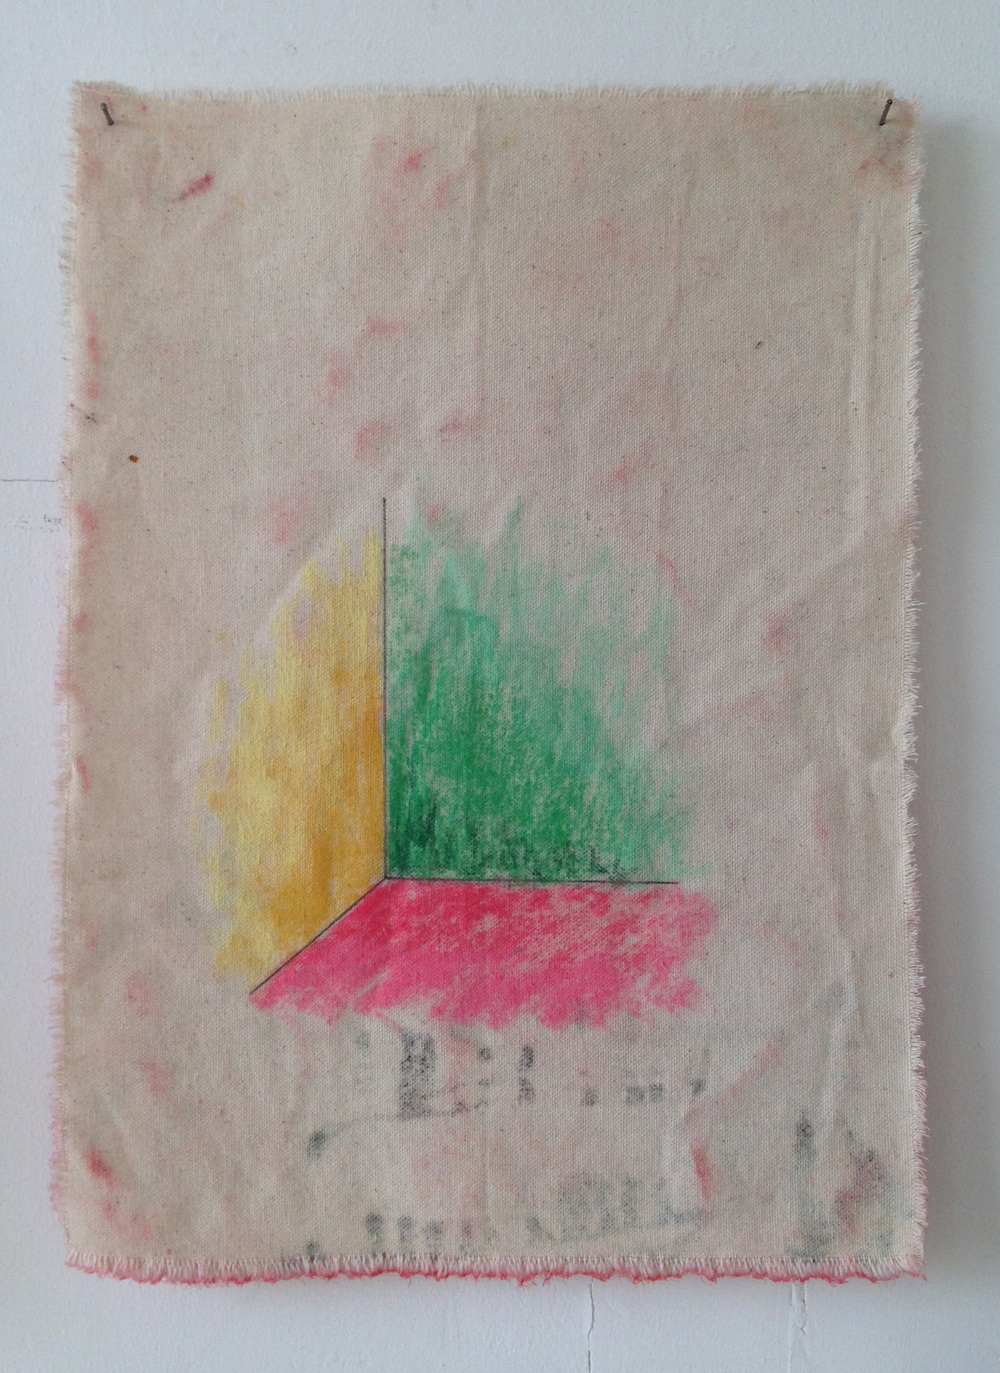 A Conversation Once Had In a Study Down a Corridor, 2015, Pencil, pastel and canvas, 40 x 28.5 cm